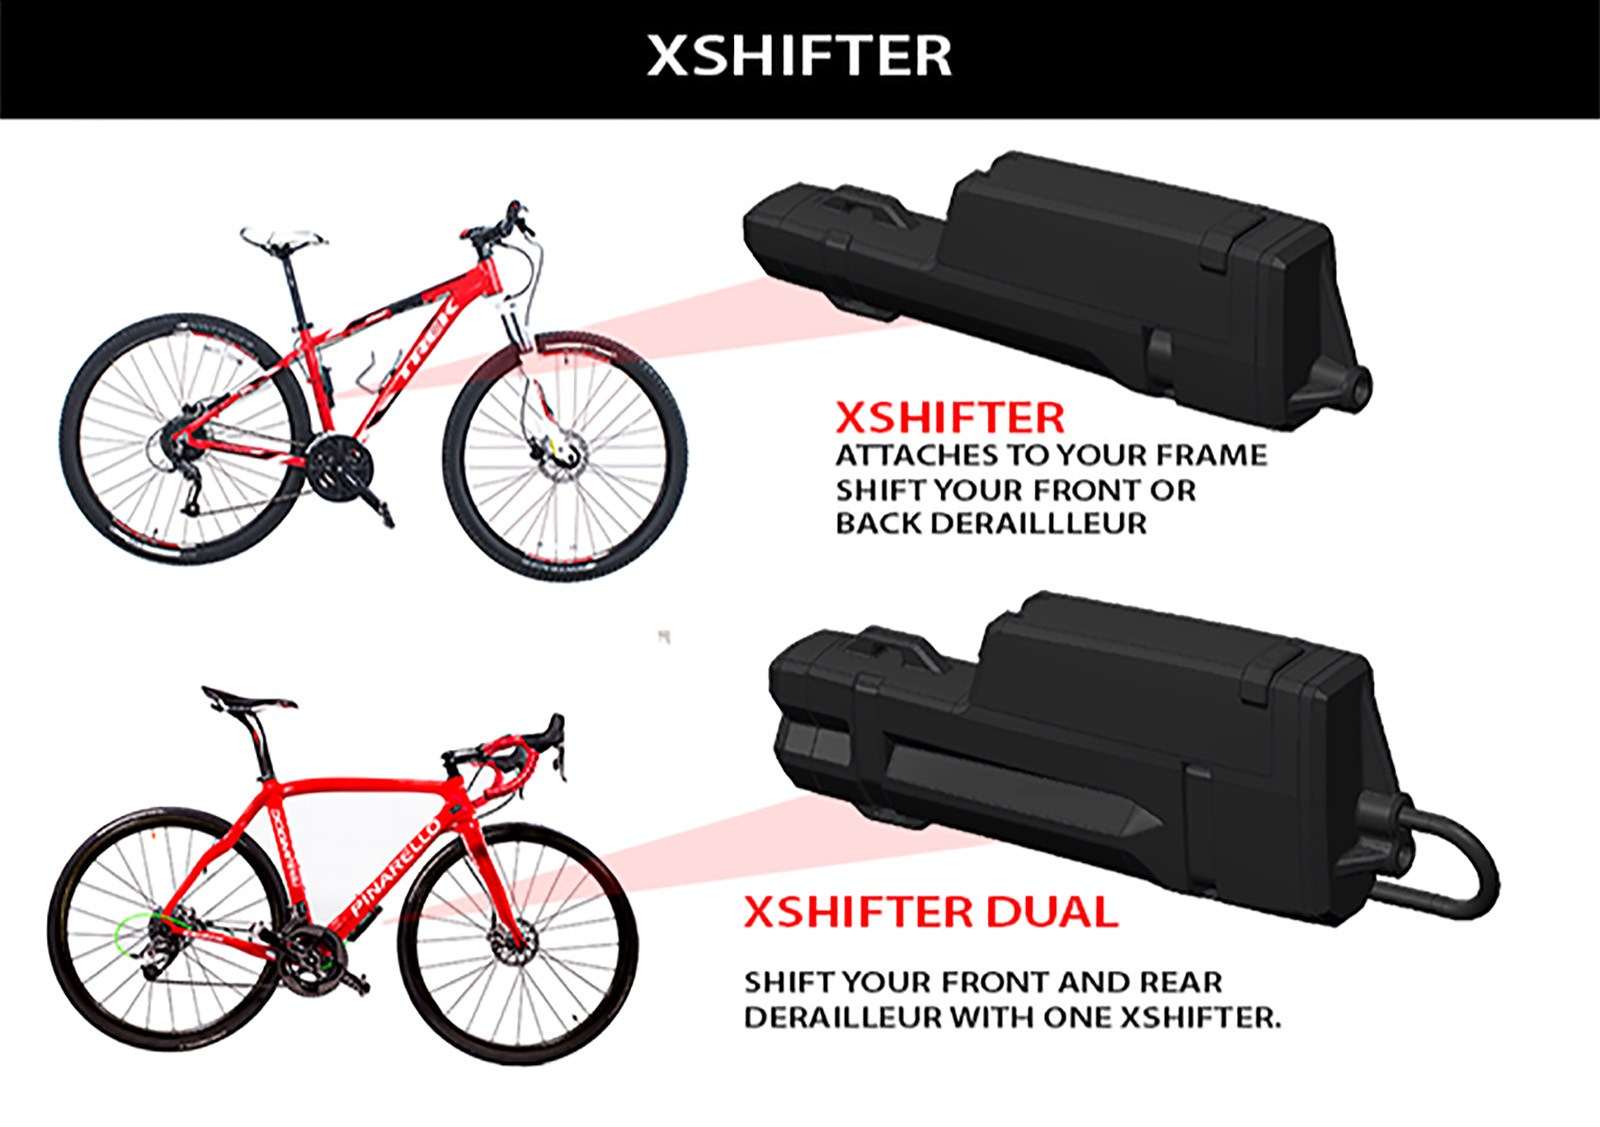 XSHIFTER